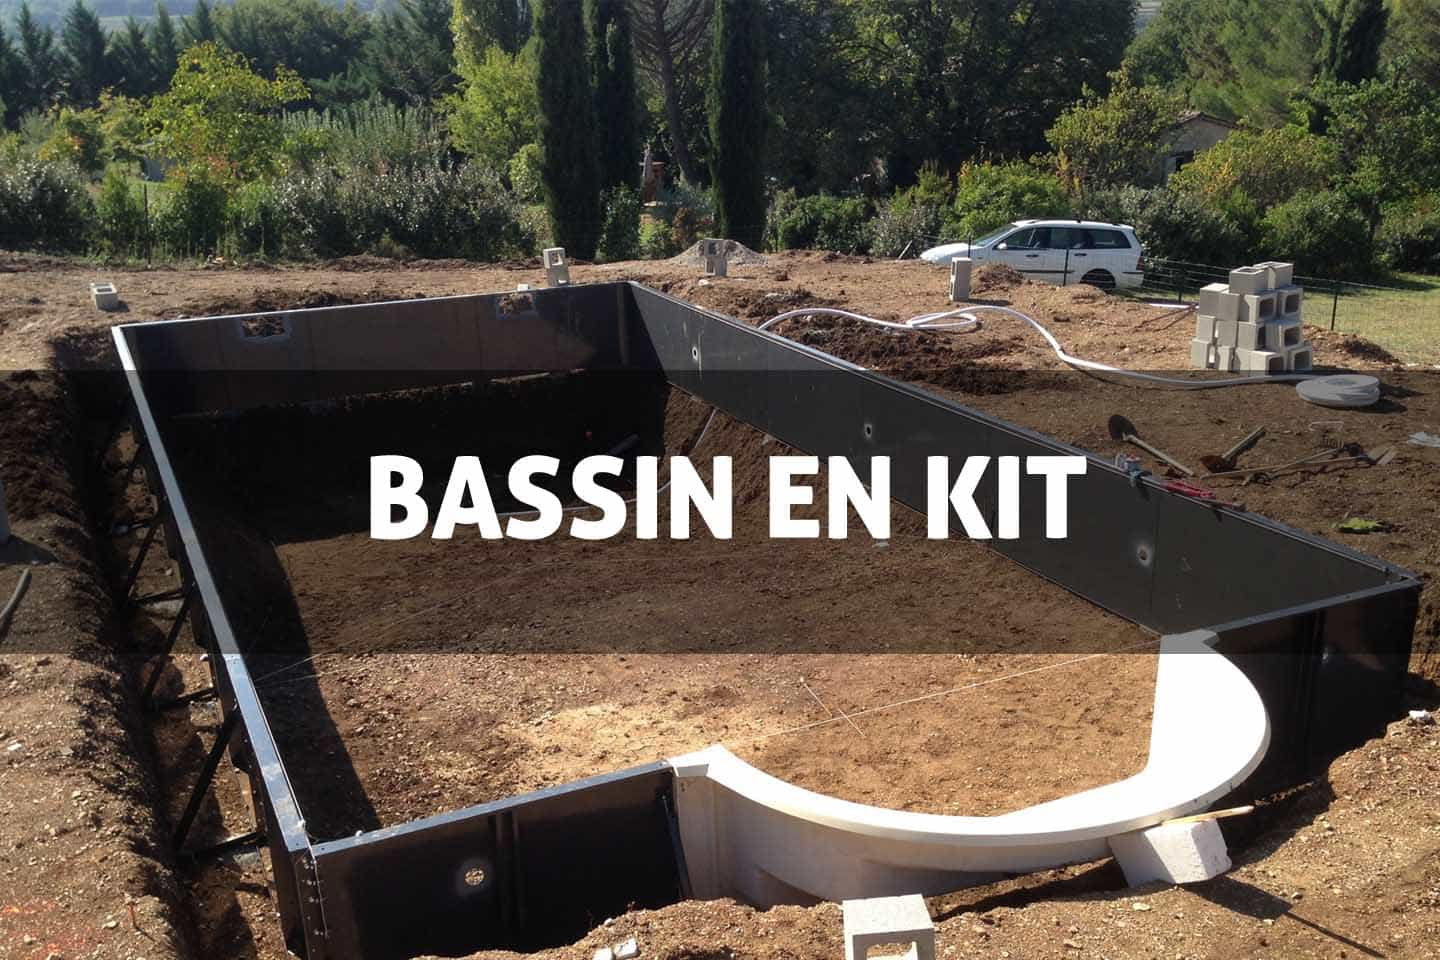 Piscine en kit diffazur piscines constructeur de for Piscine en kit beton